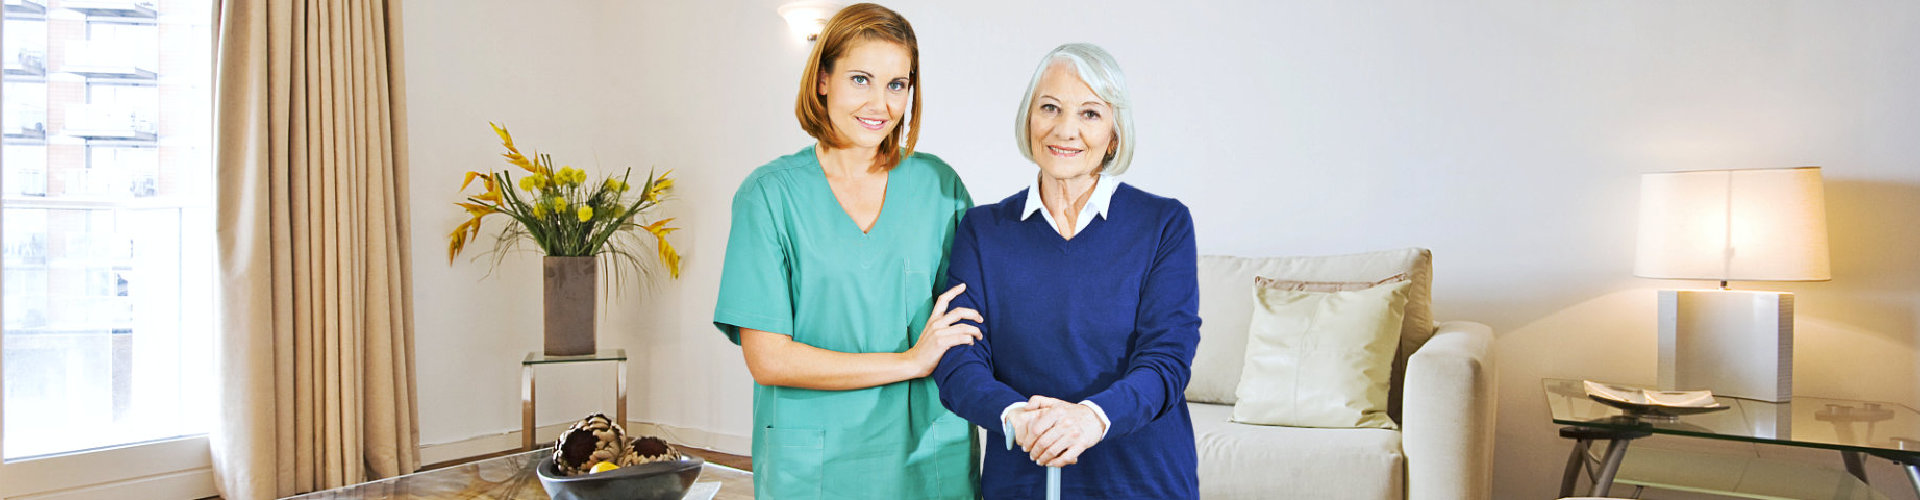 caregiver and senior woman standing